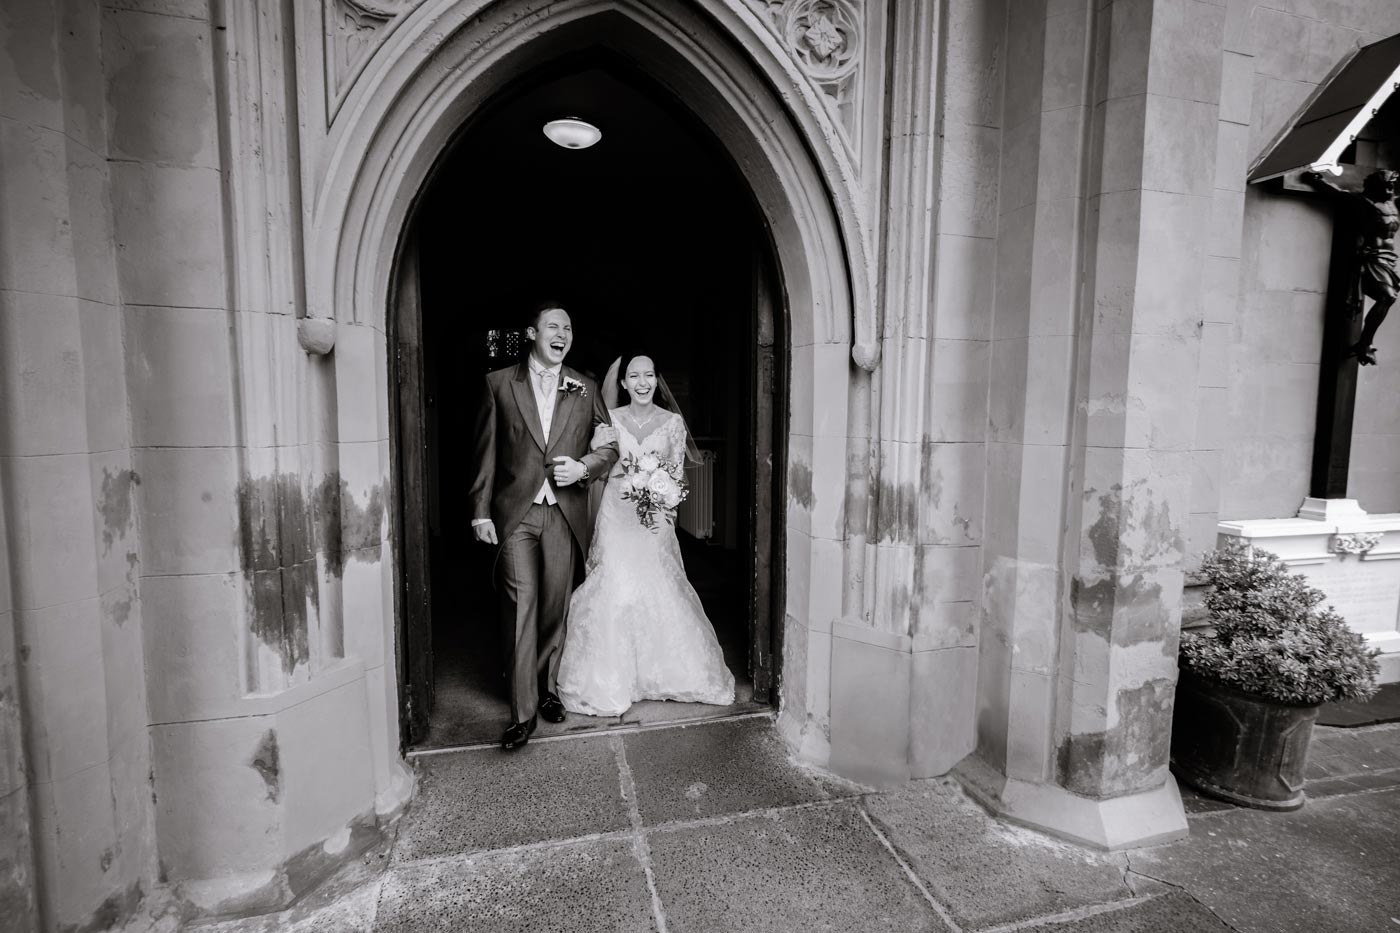 Bride and groom laughing as they exit their wedding ceremony